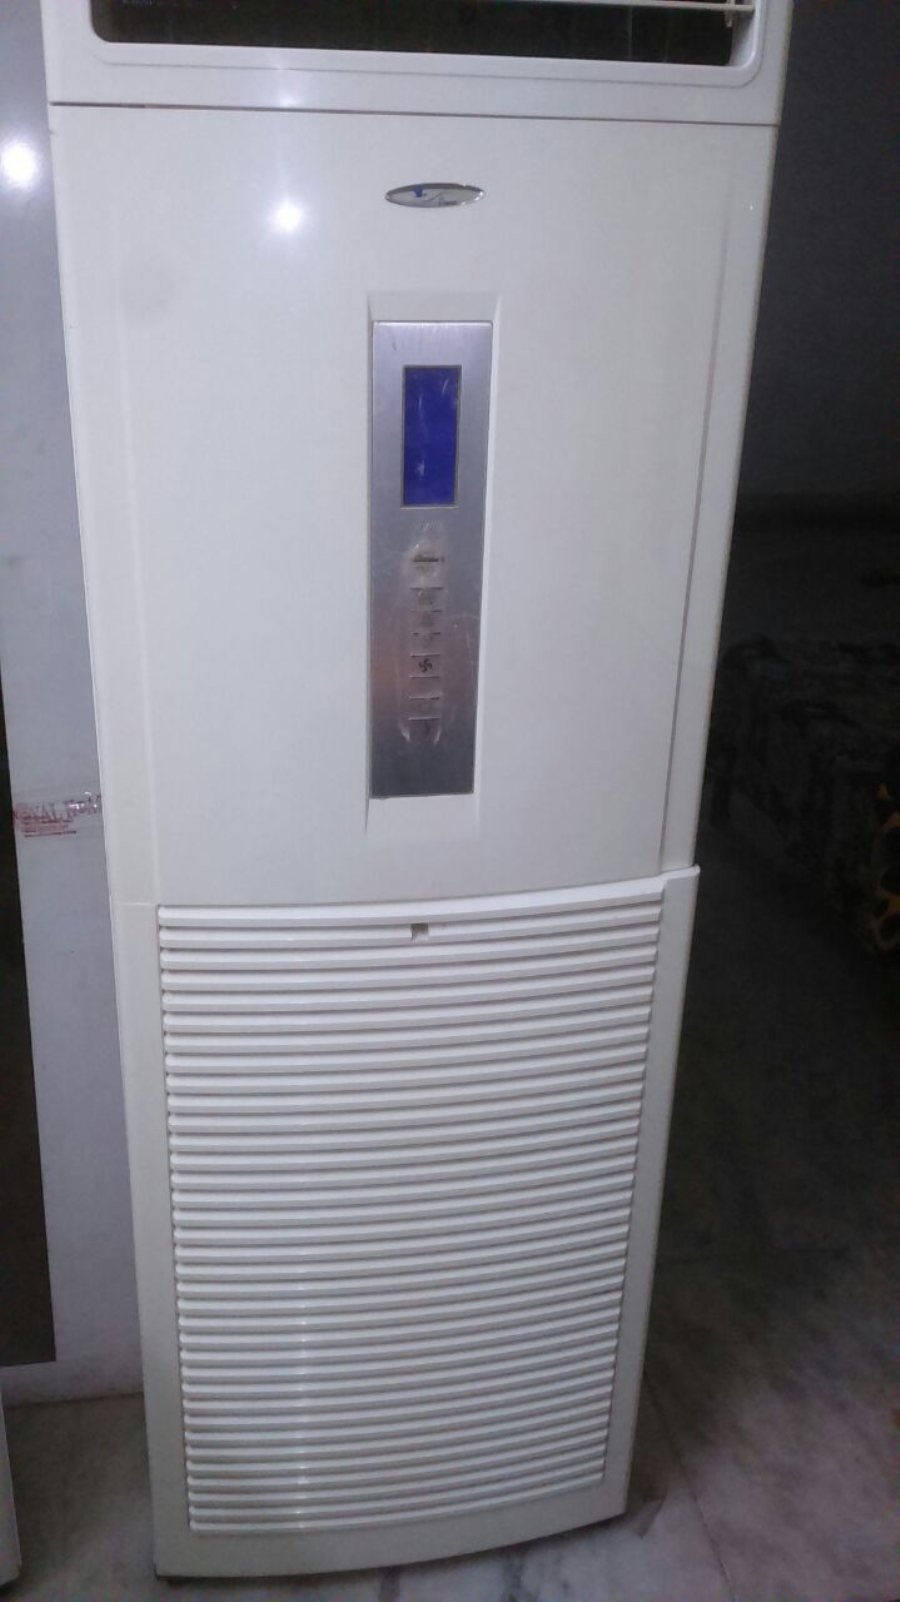 Voltas Venture Tower AC  Capacity : 3 Ton Very Good Condition Just Like new Price : Rs 40, 000